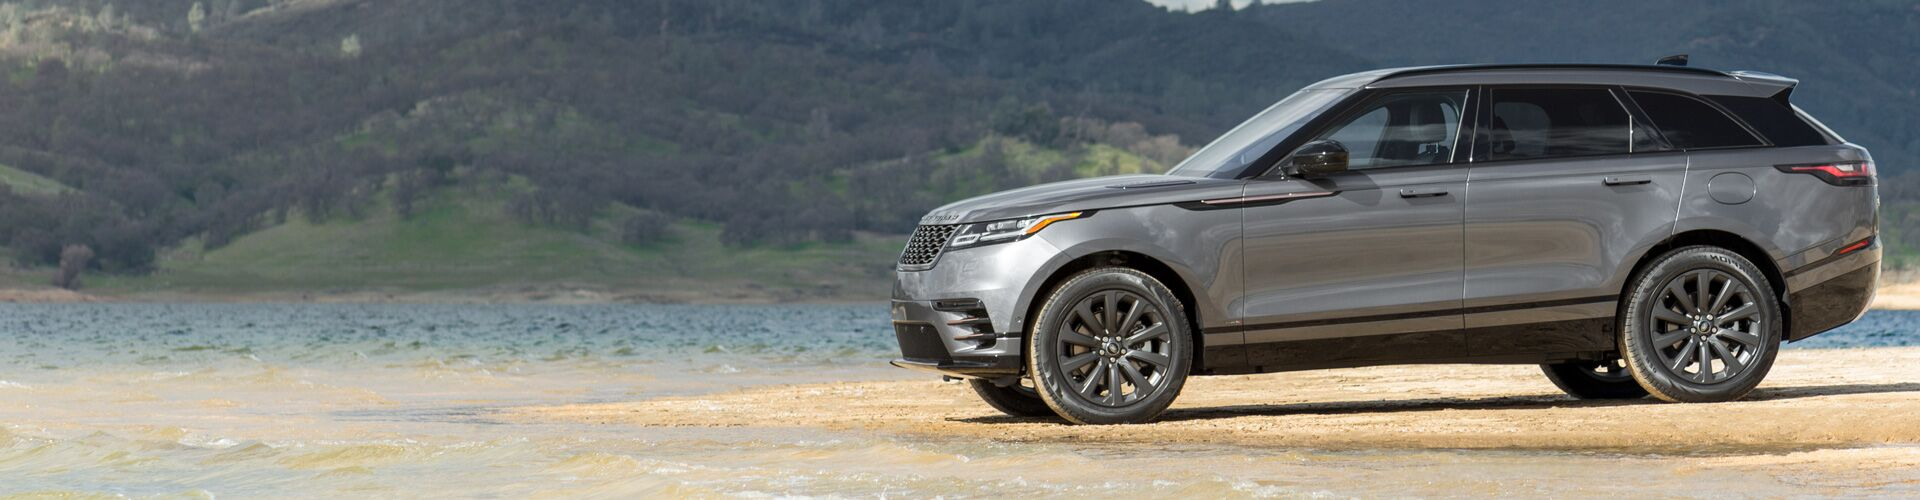 New 2018 Velar Purchase offer